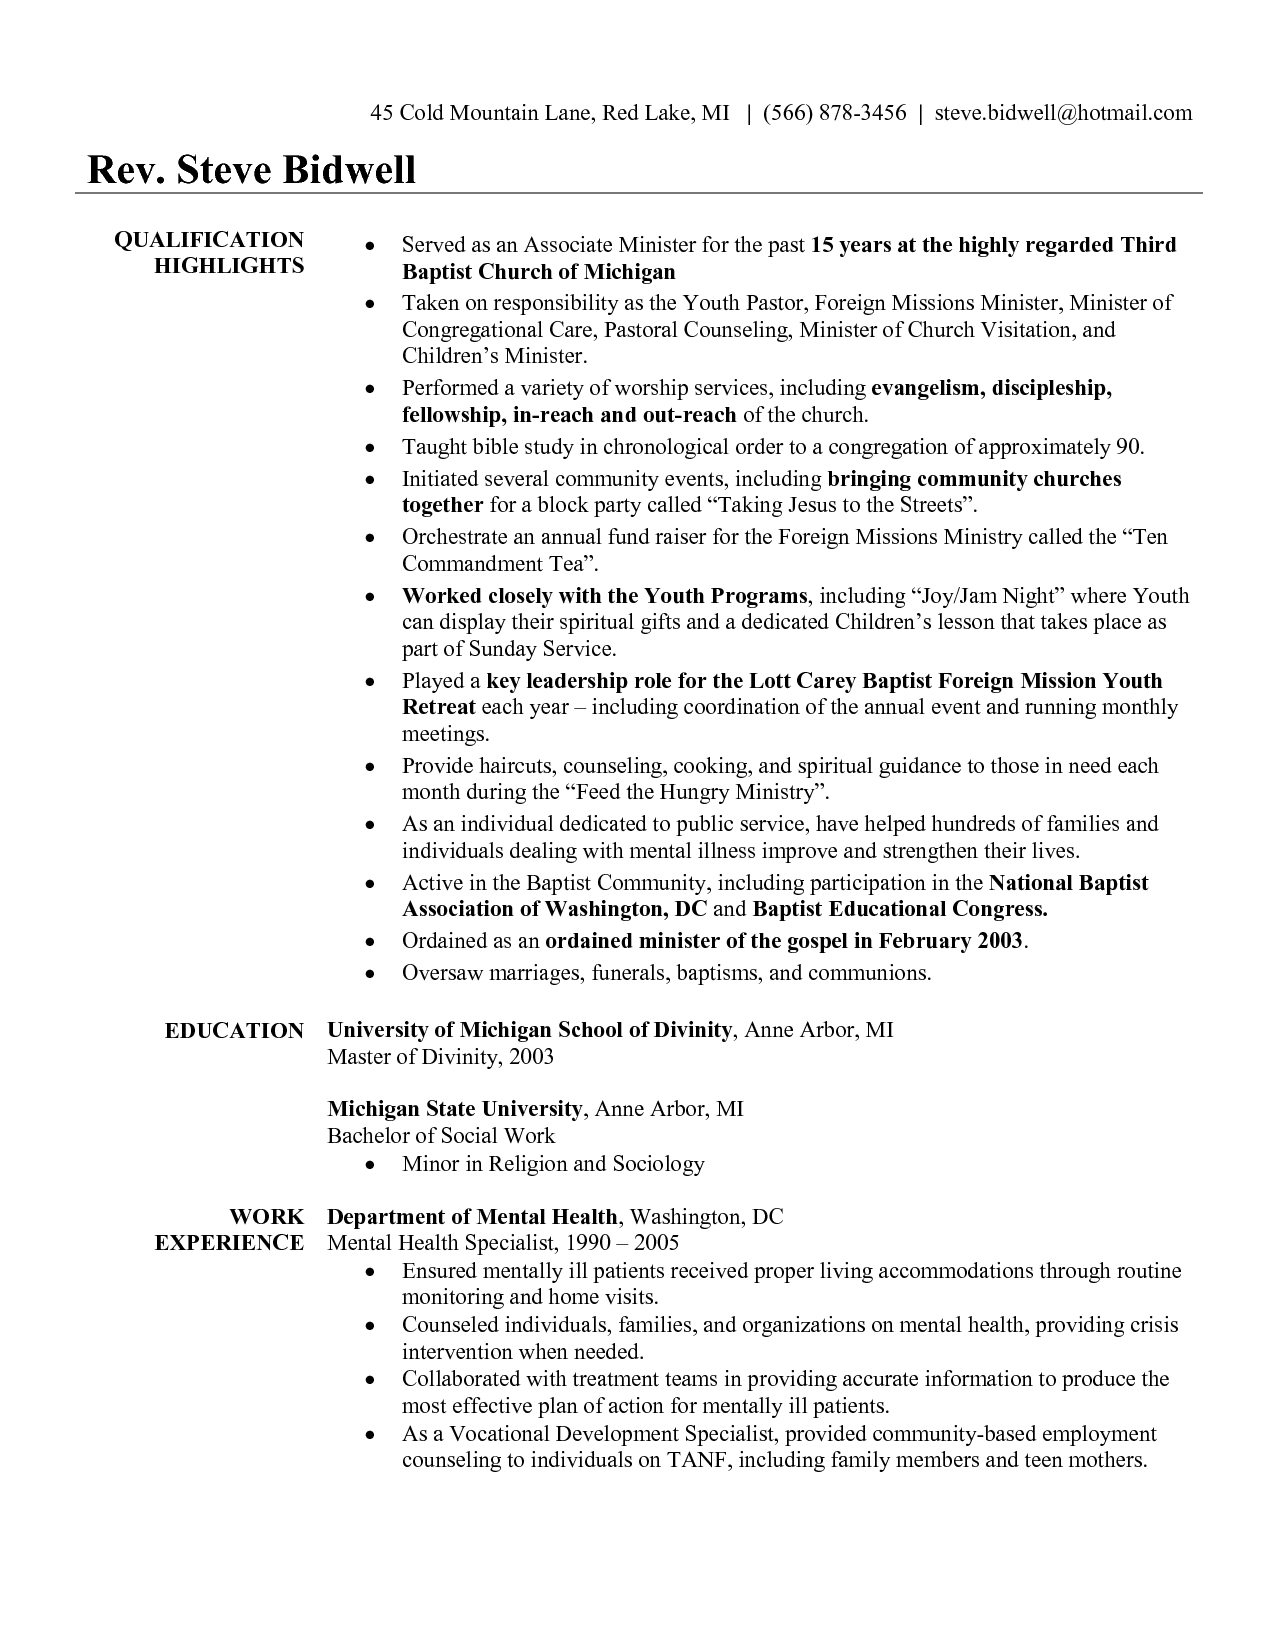 Youth Central Resume templates, Resume examples, Sample